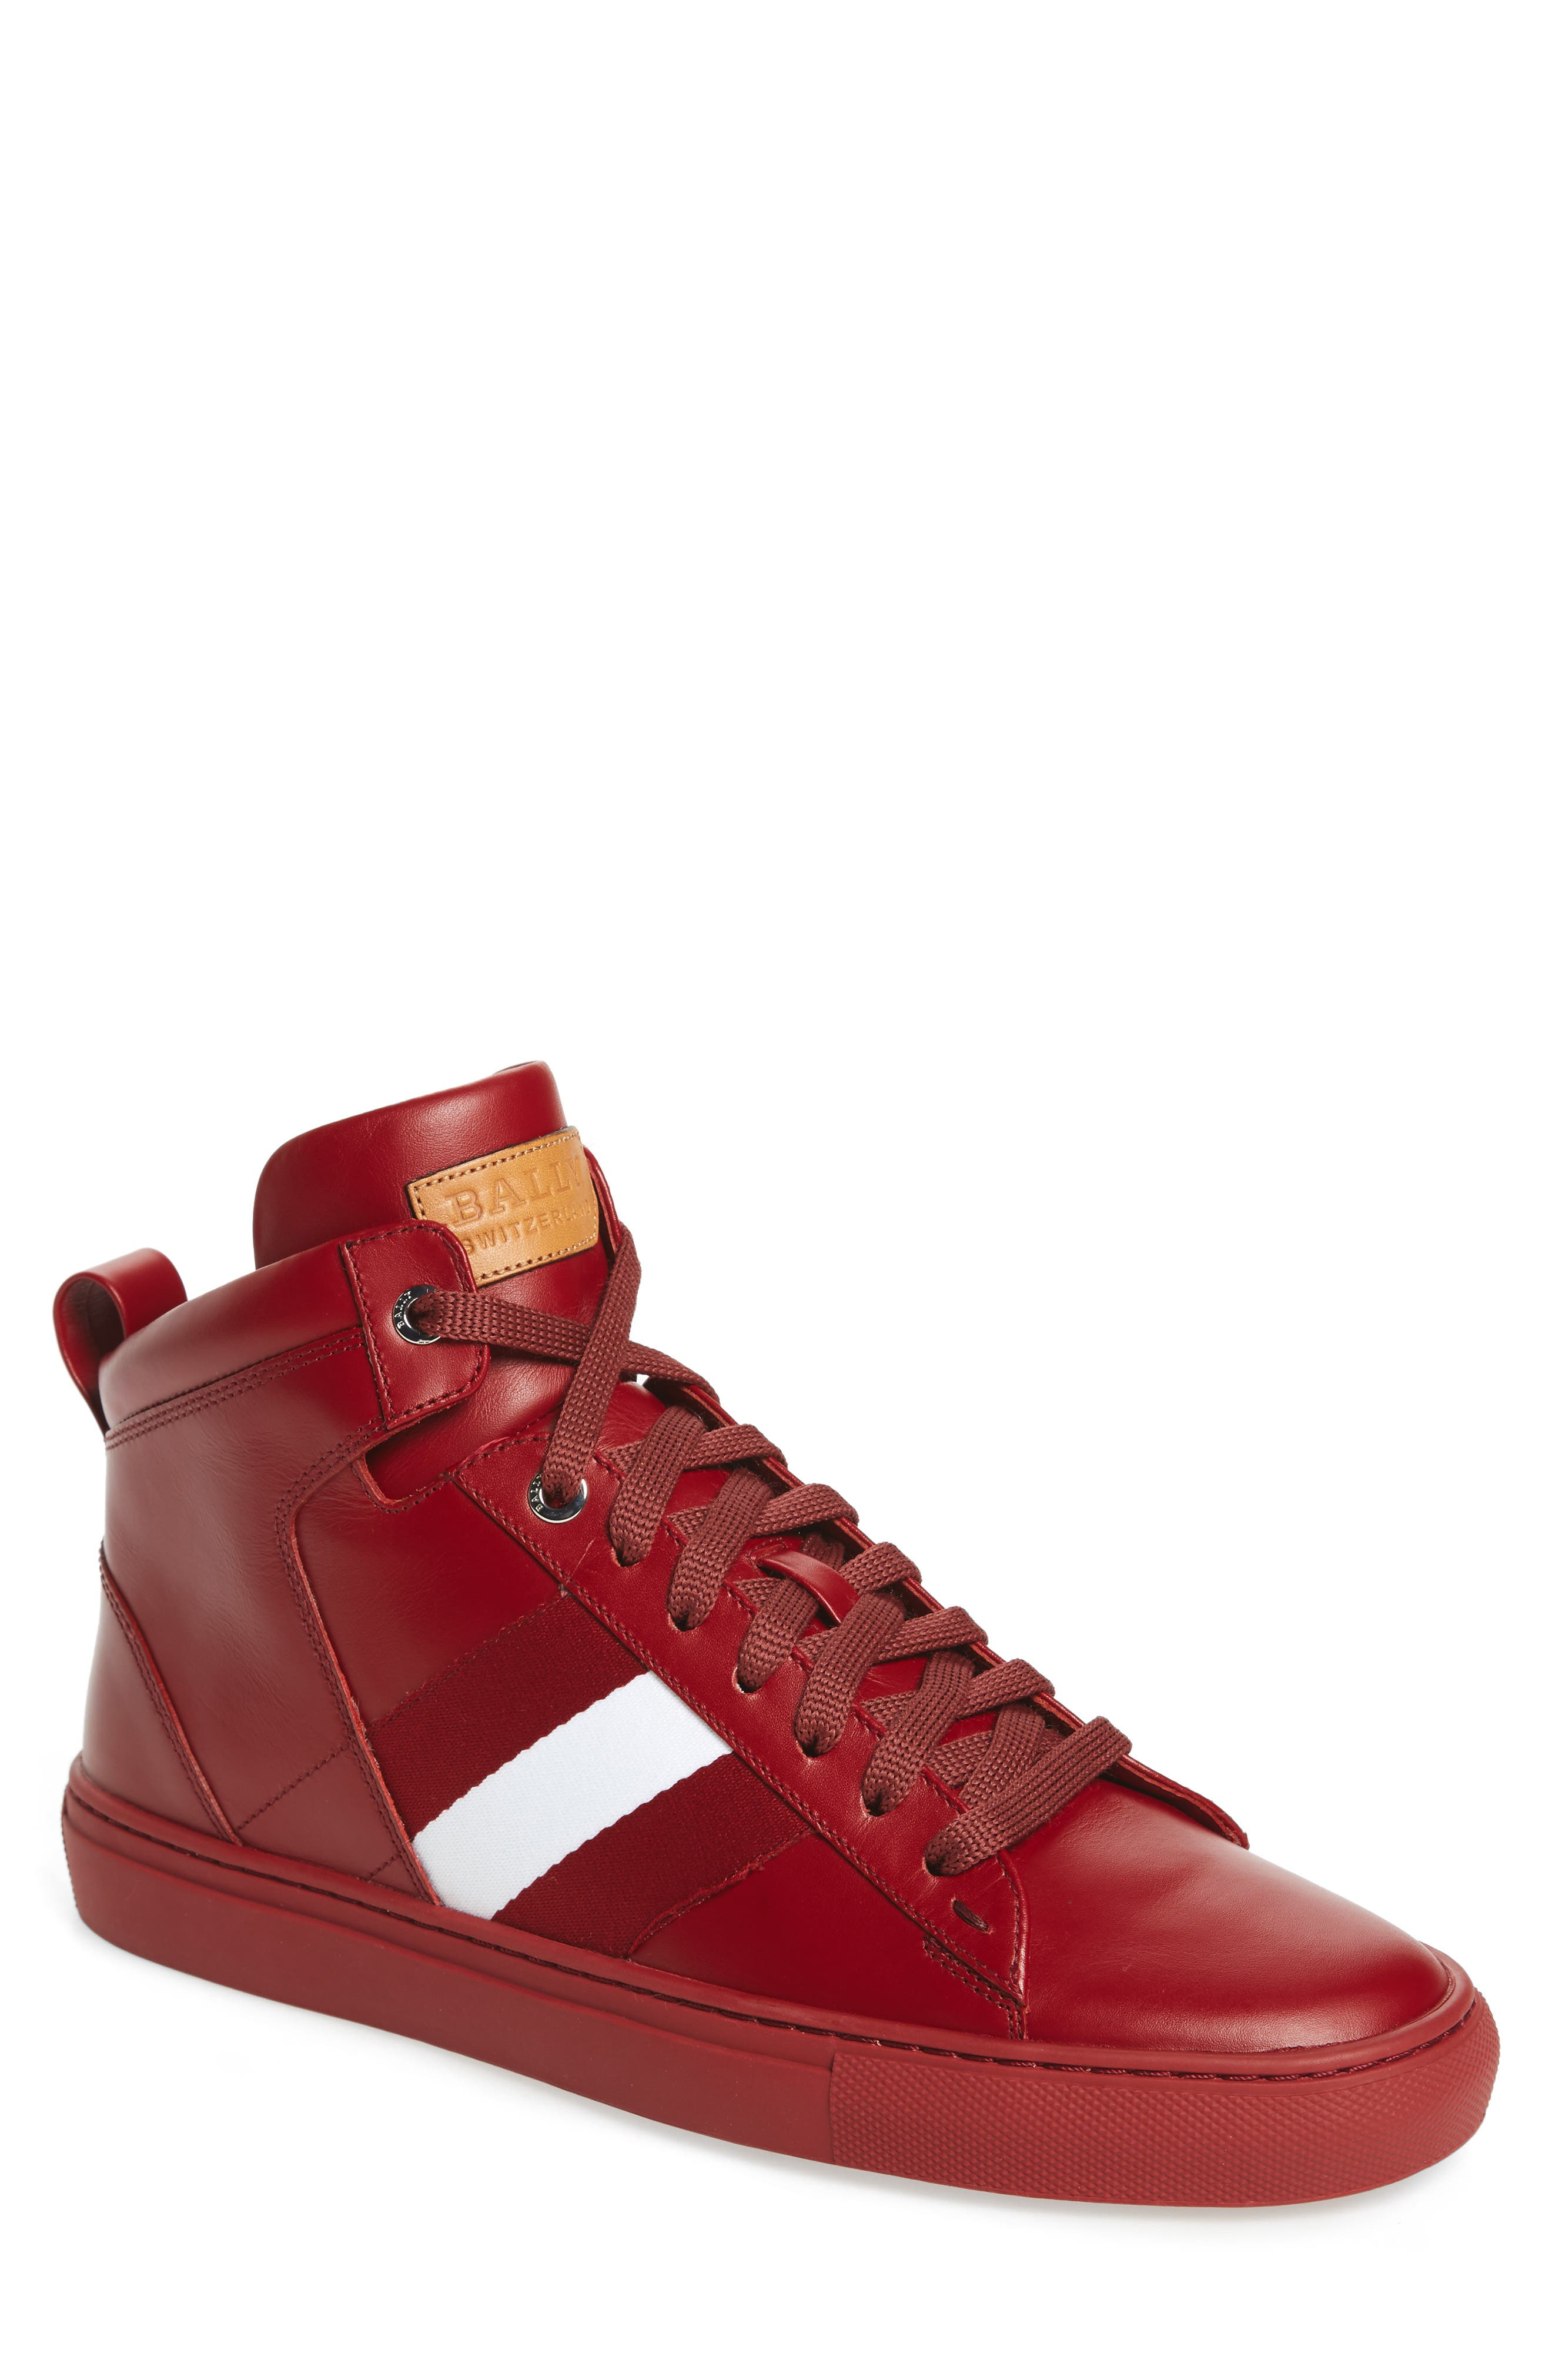 Hedern Sneaker,                             Main thumbnail 1, color,                             Red Leather